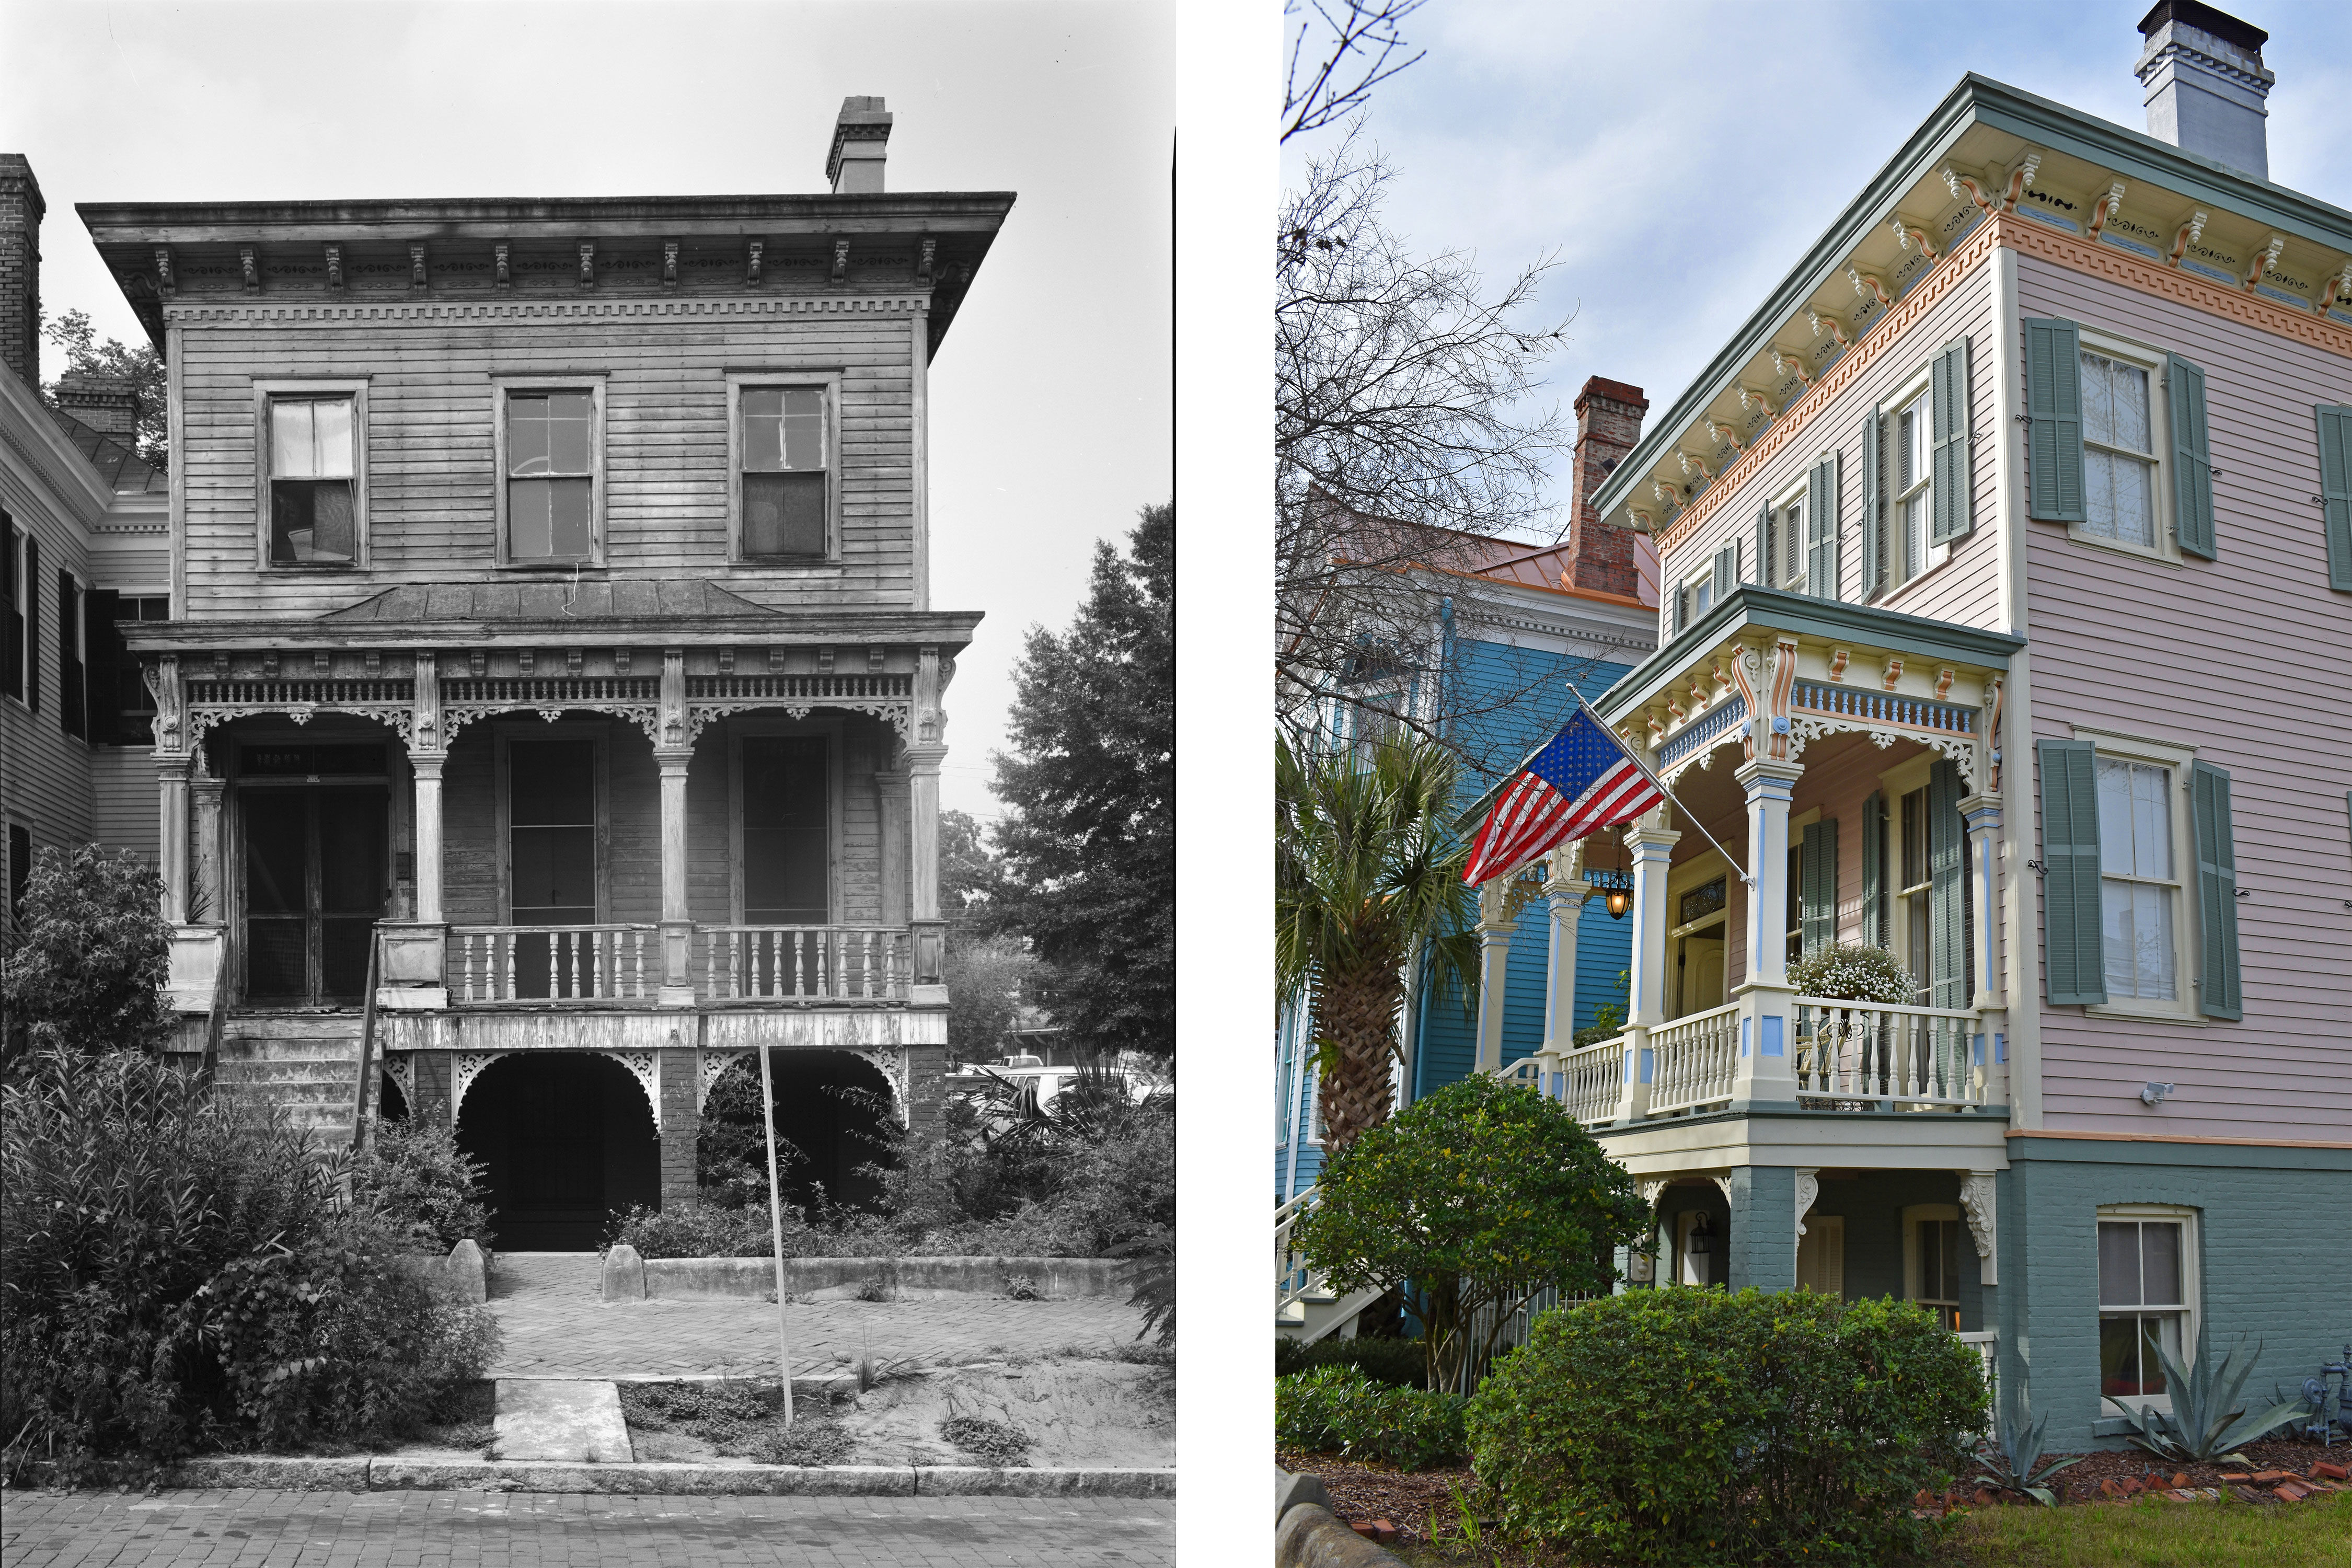 See Them To Believe Them: Incredible Historic Savannah Home Renos!